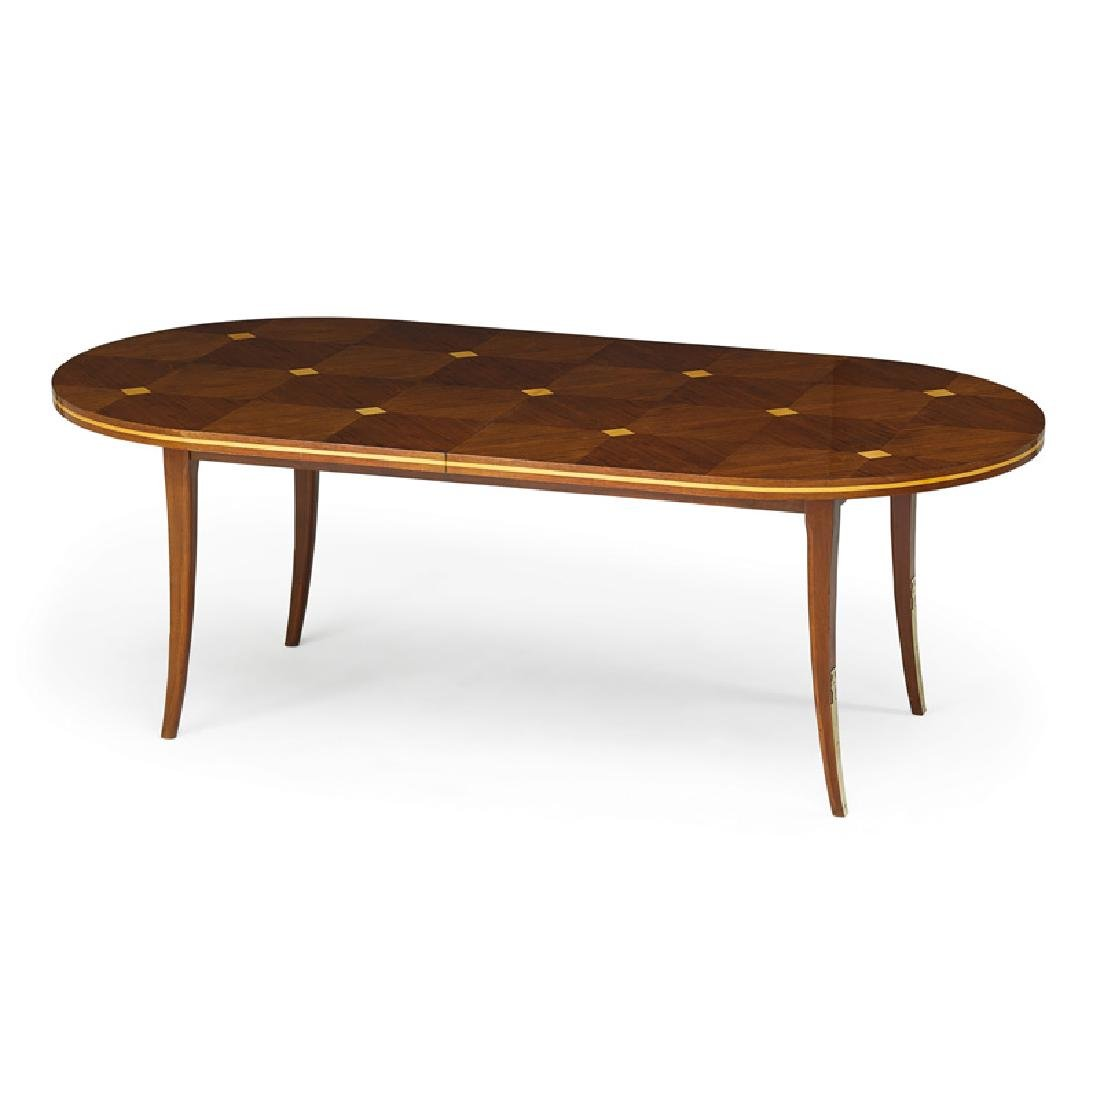 TOMMI PARZINGER Fine and rare dining table